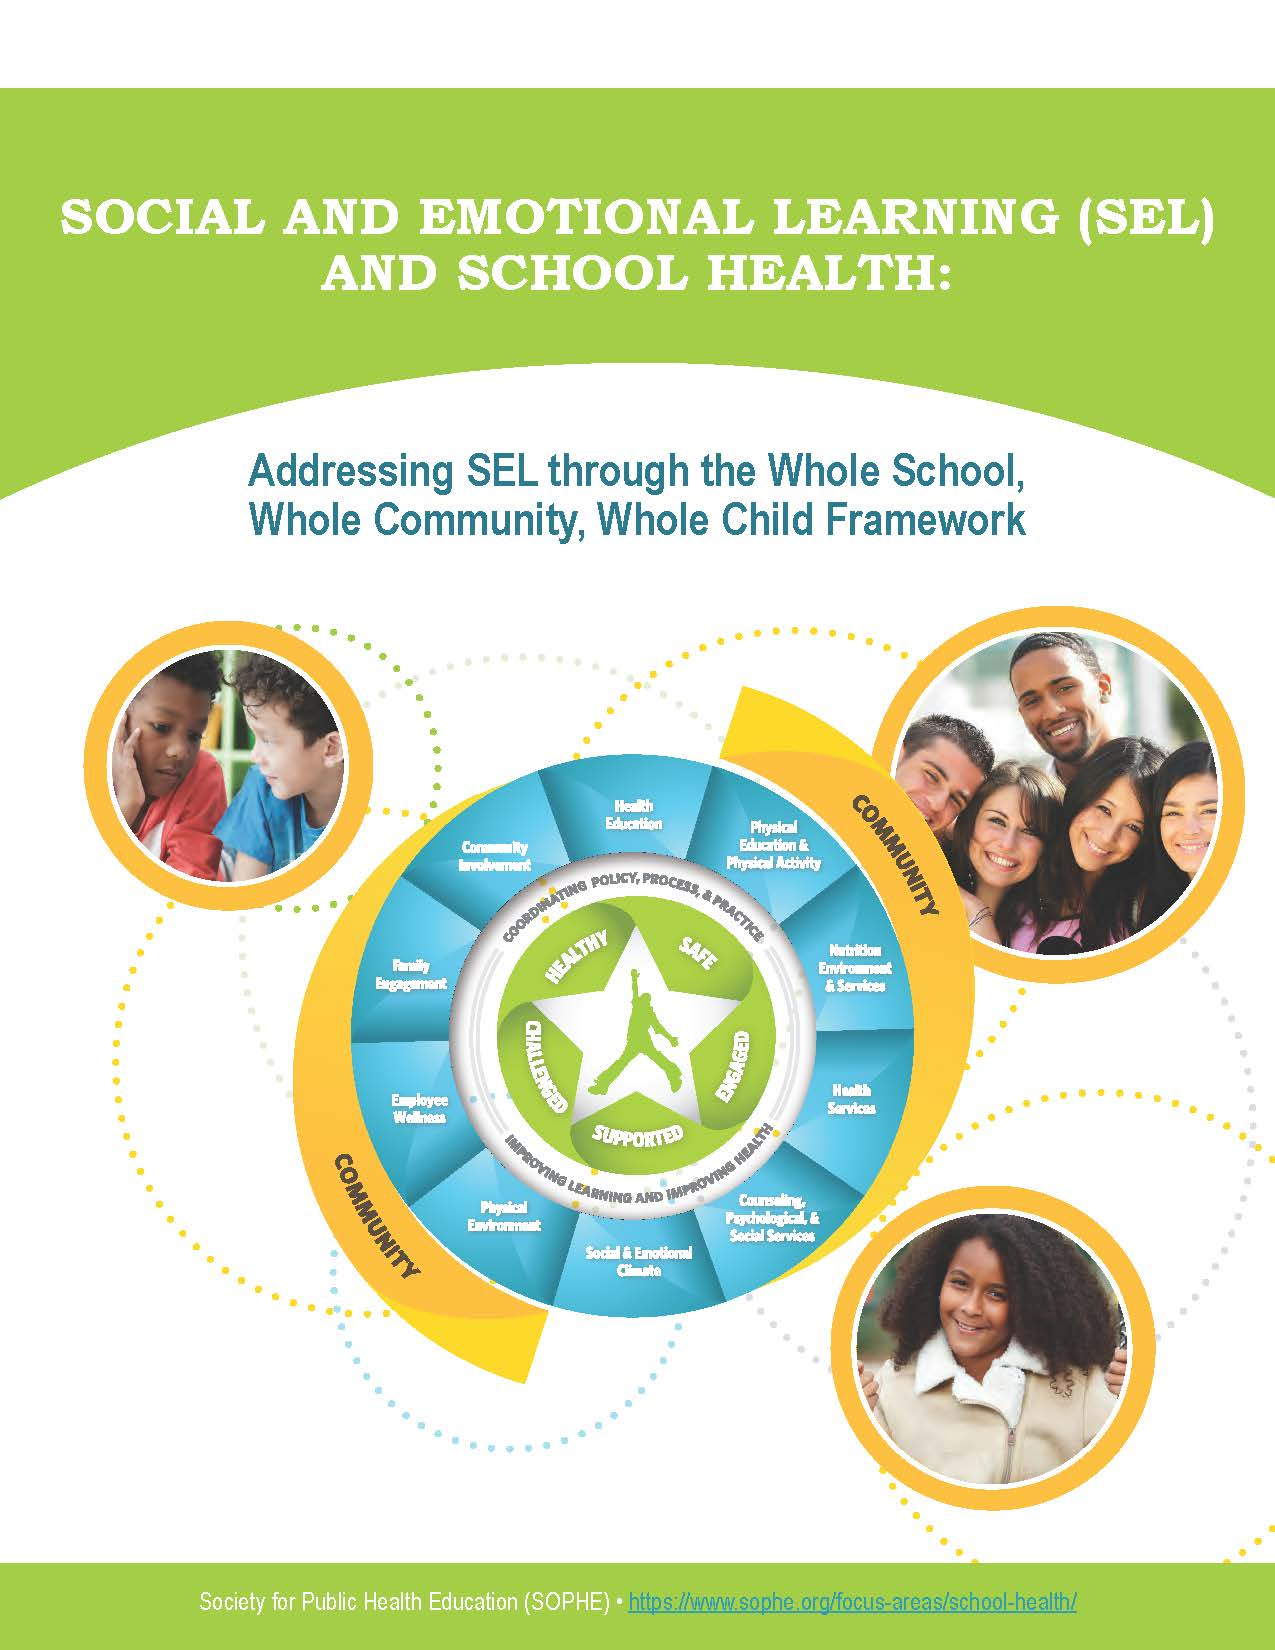 SOPHE's social and emotional learning and school health guide